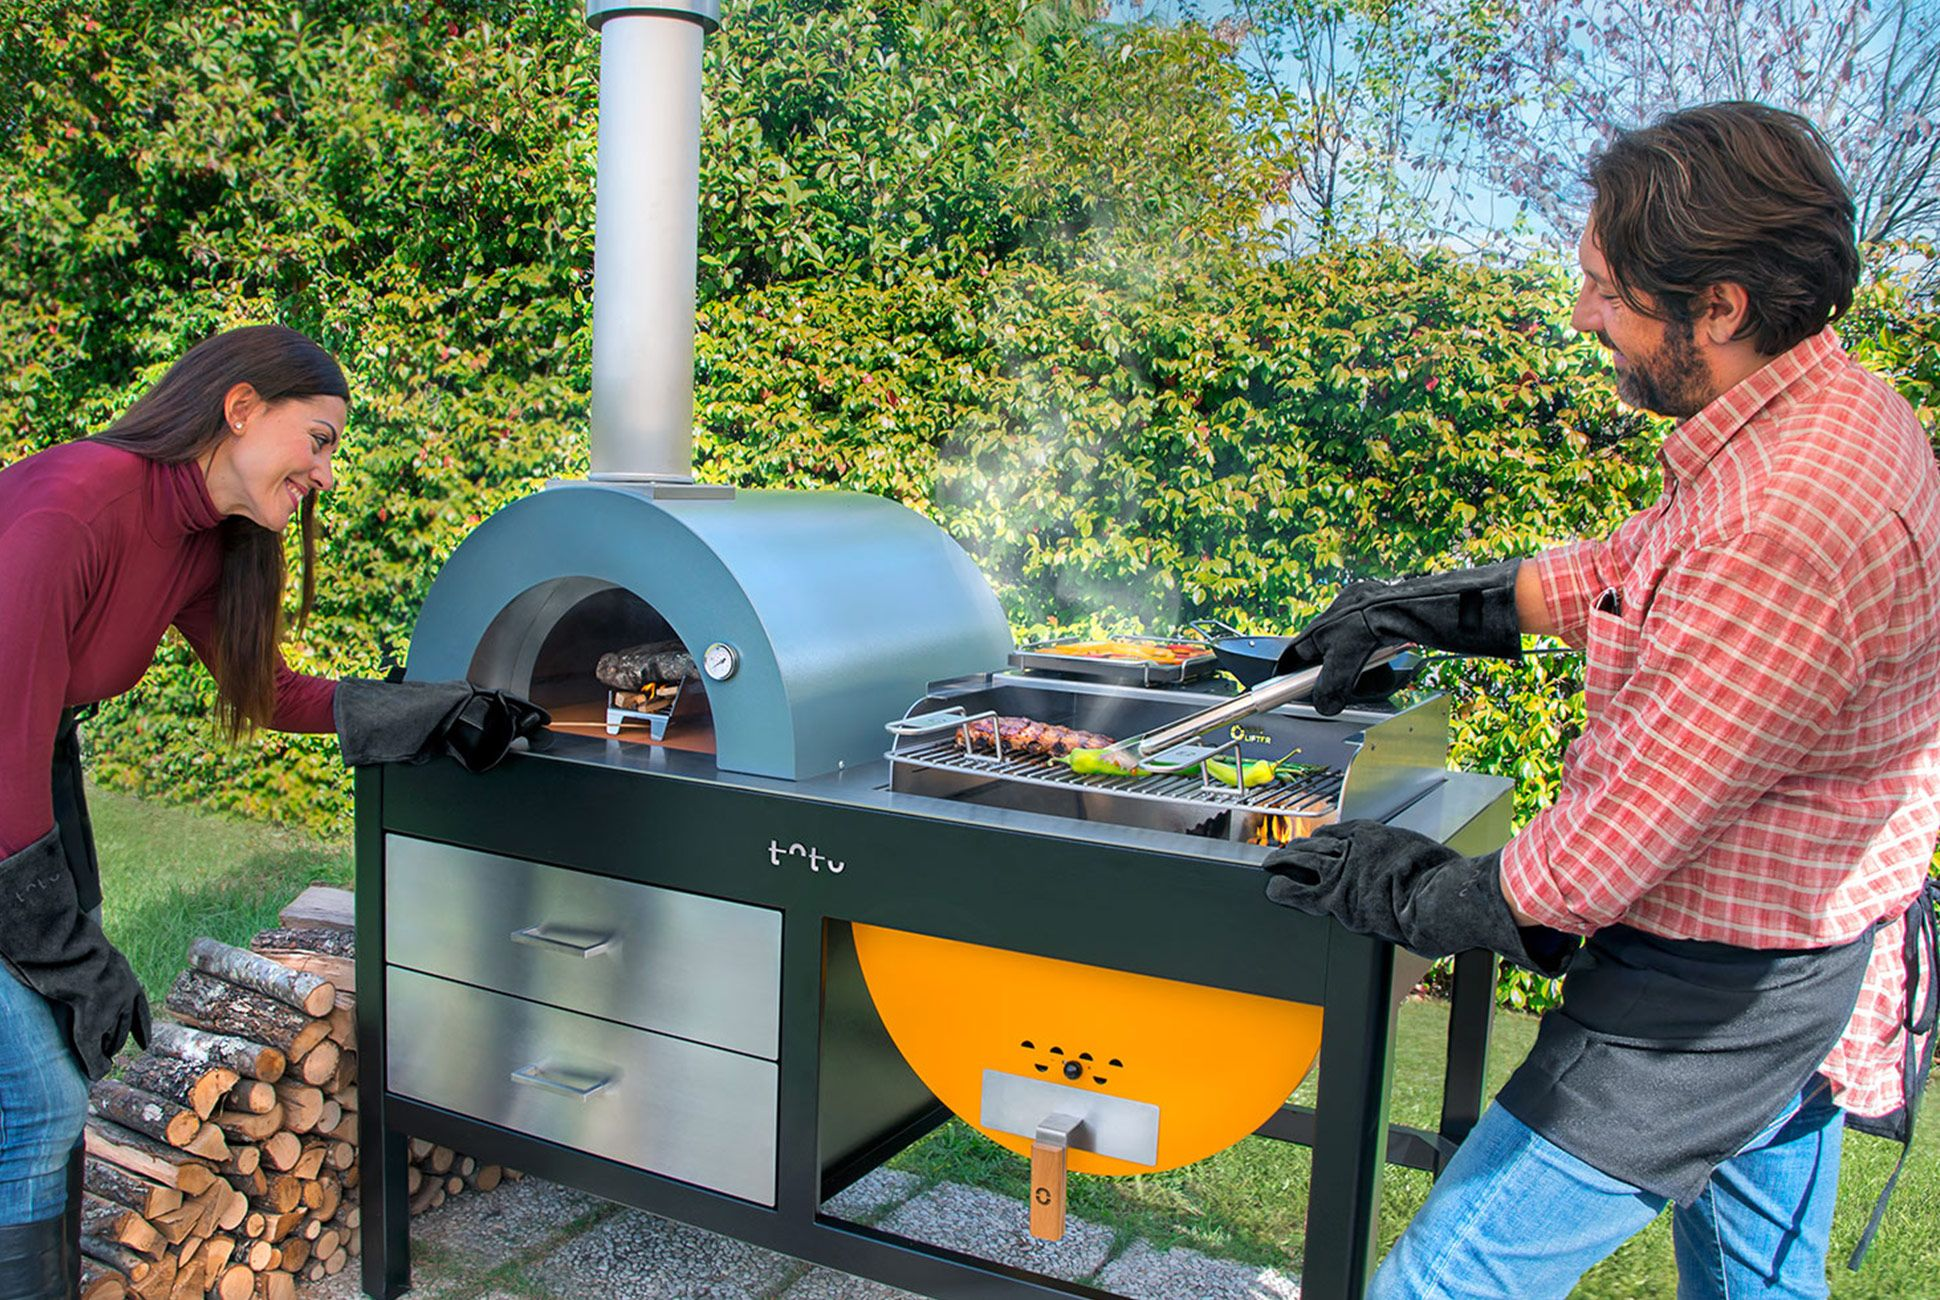 Toto-Grill-Oven-Gear-Patrol-Slide-1